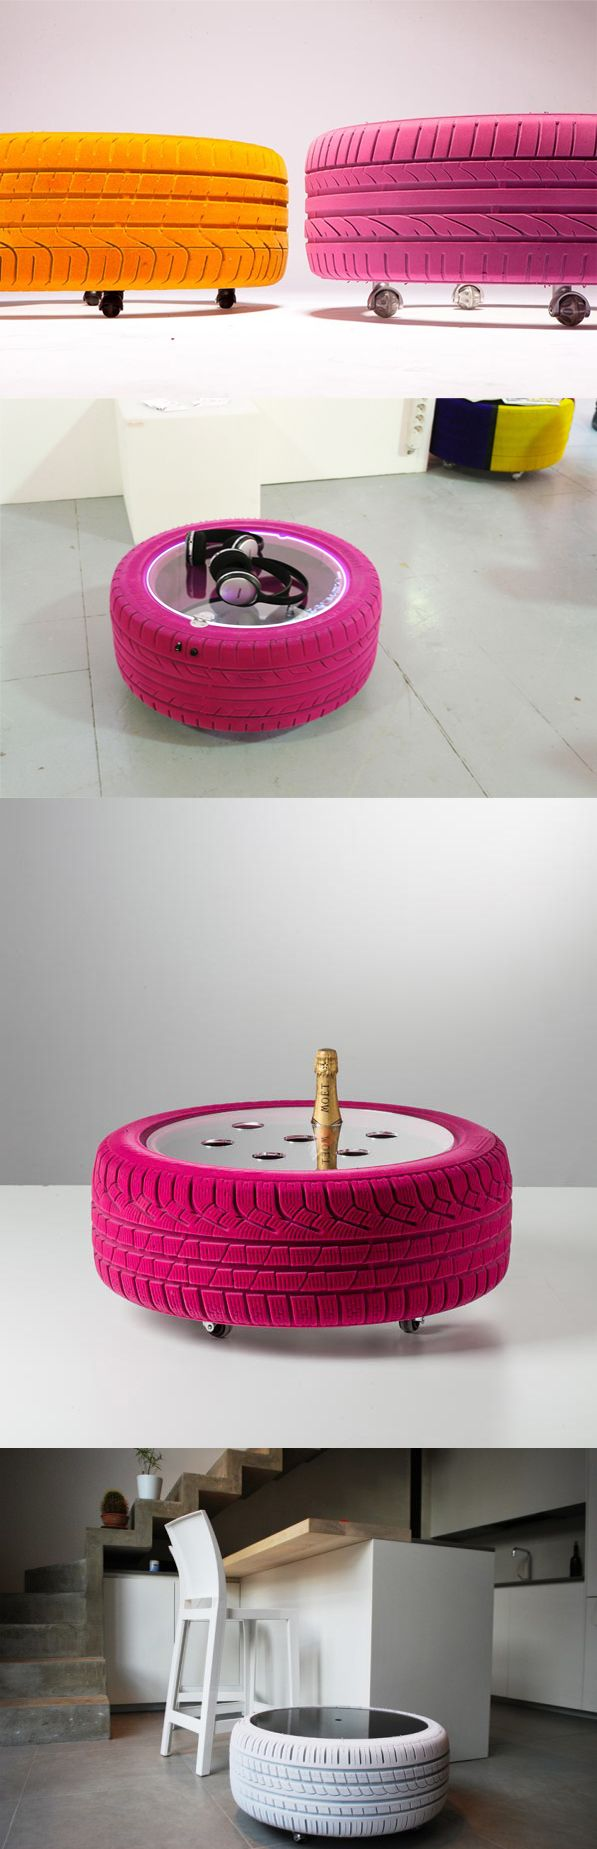 Possible DIY with tires..